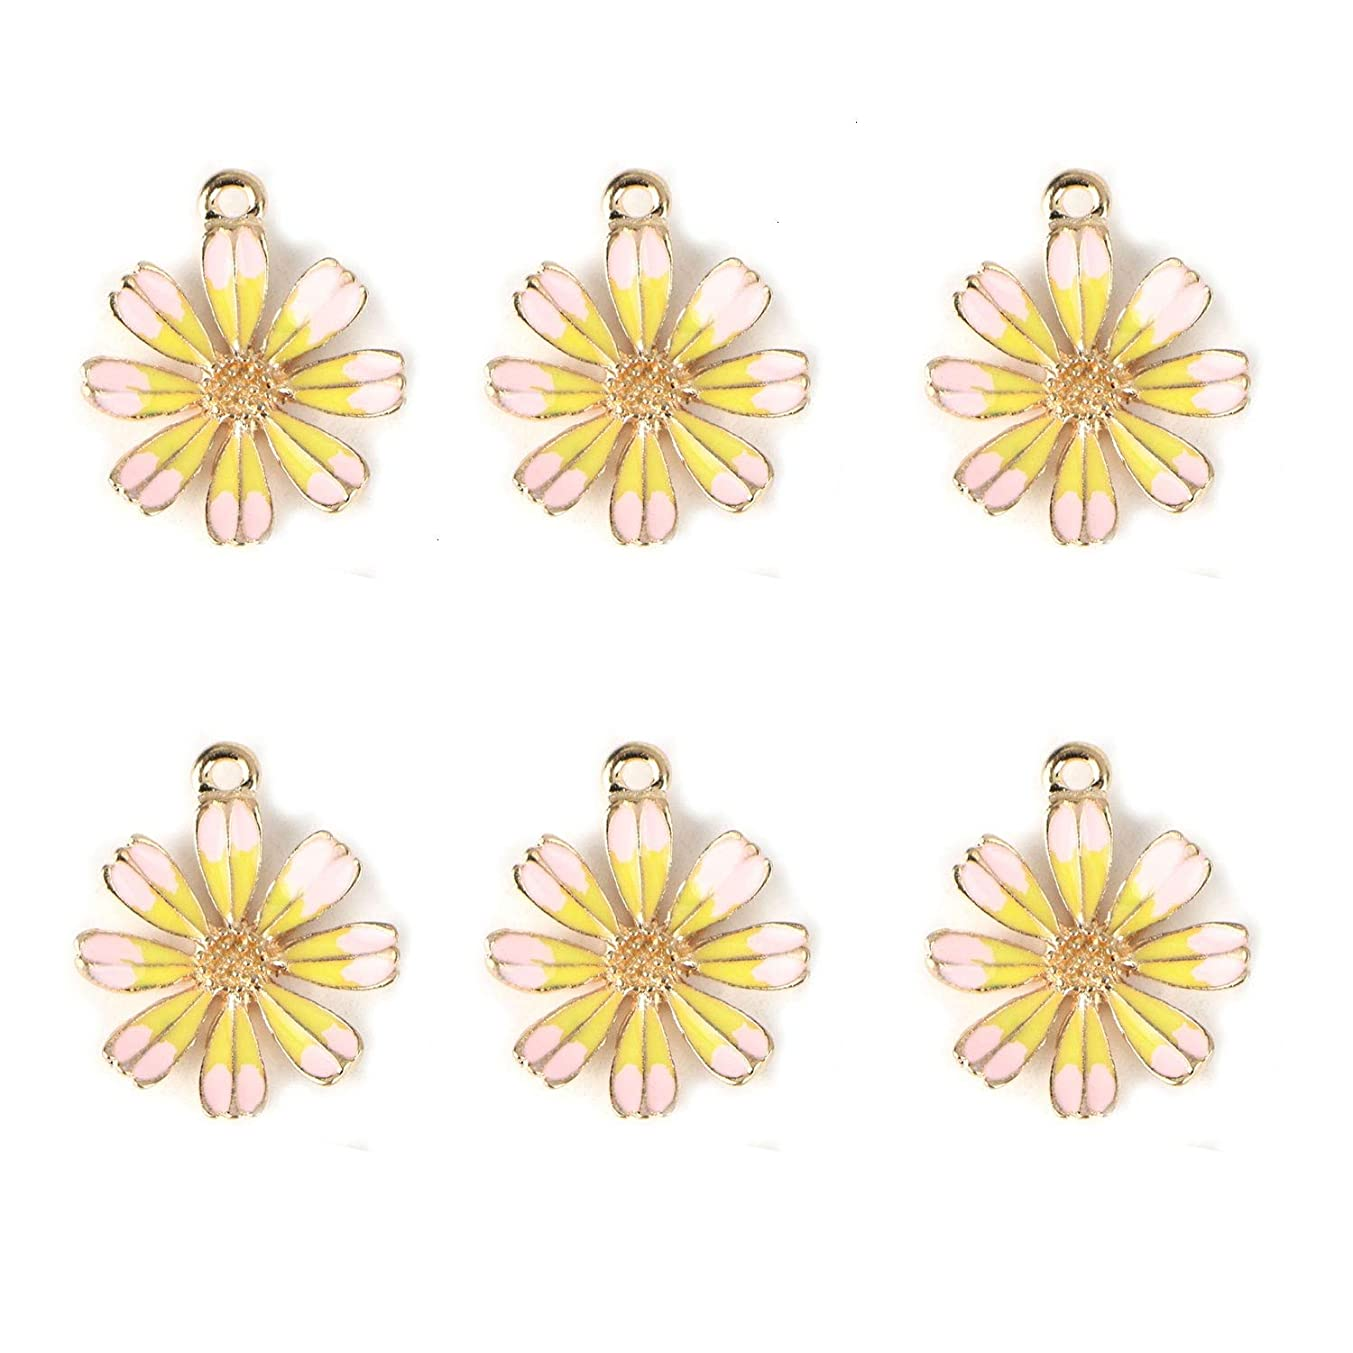 Monrocco 10Pcs Enamel Flower Charms Enamel Chrysanthemum Charm Pendants for Jewelry Making Bracelet Necklace